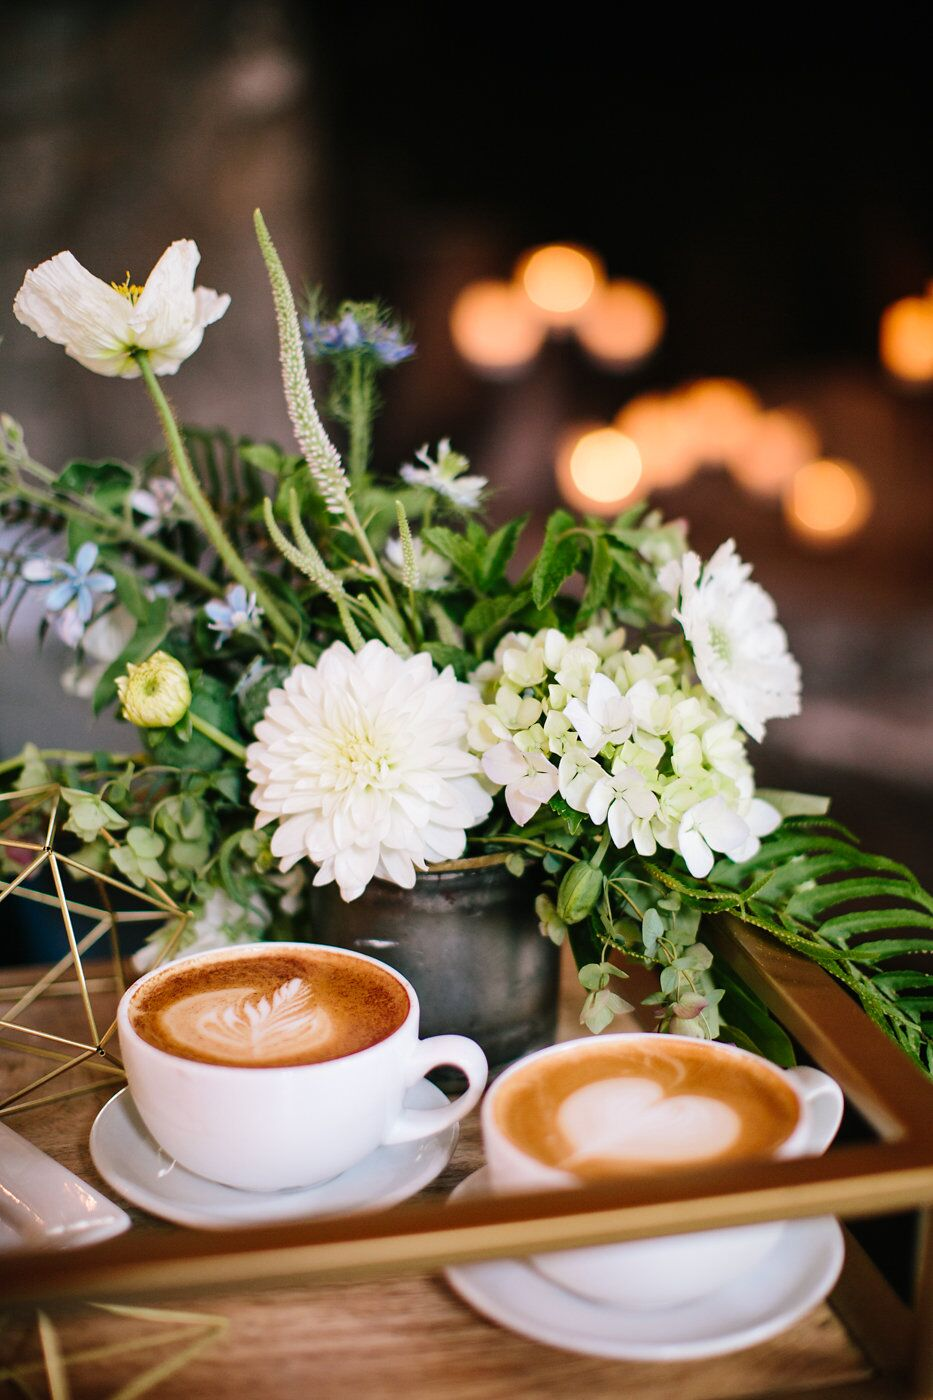 Lattes and flowers by Espresso Elegance Catering